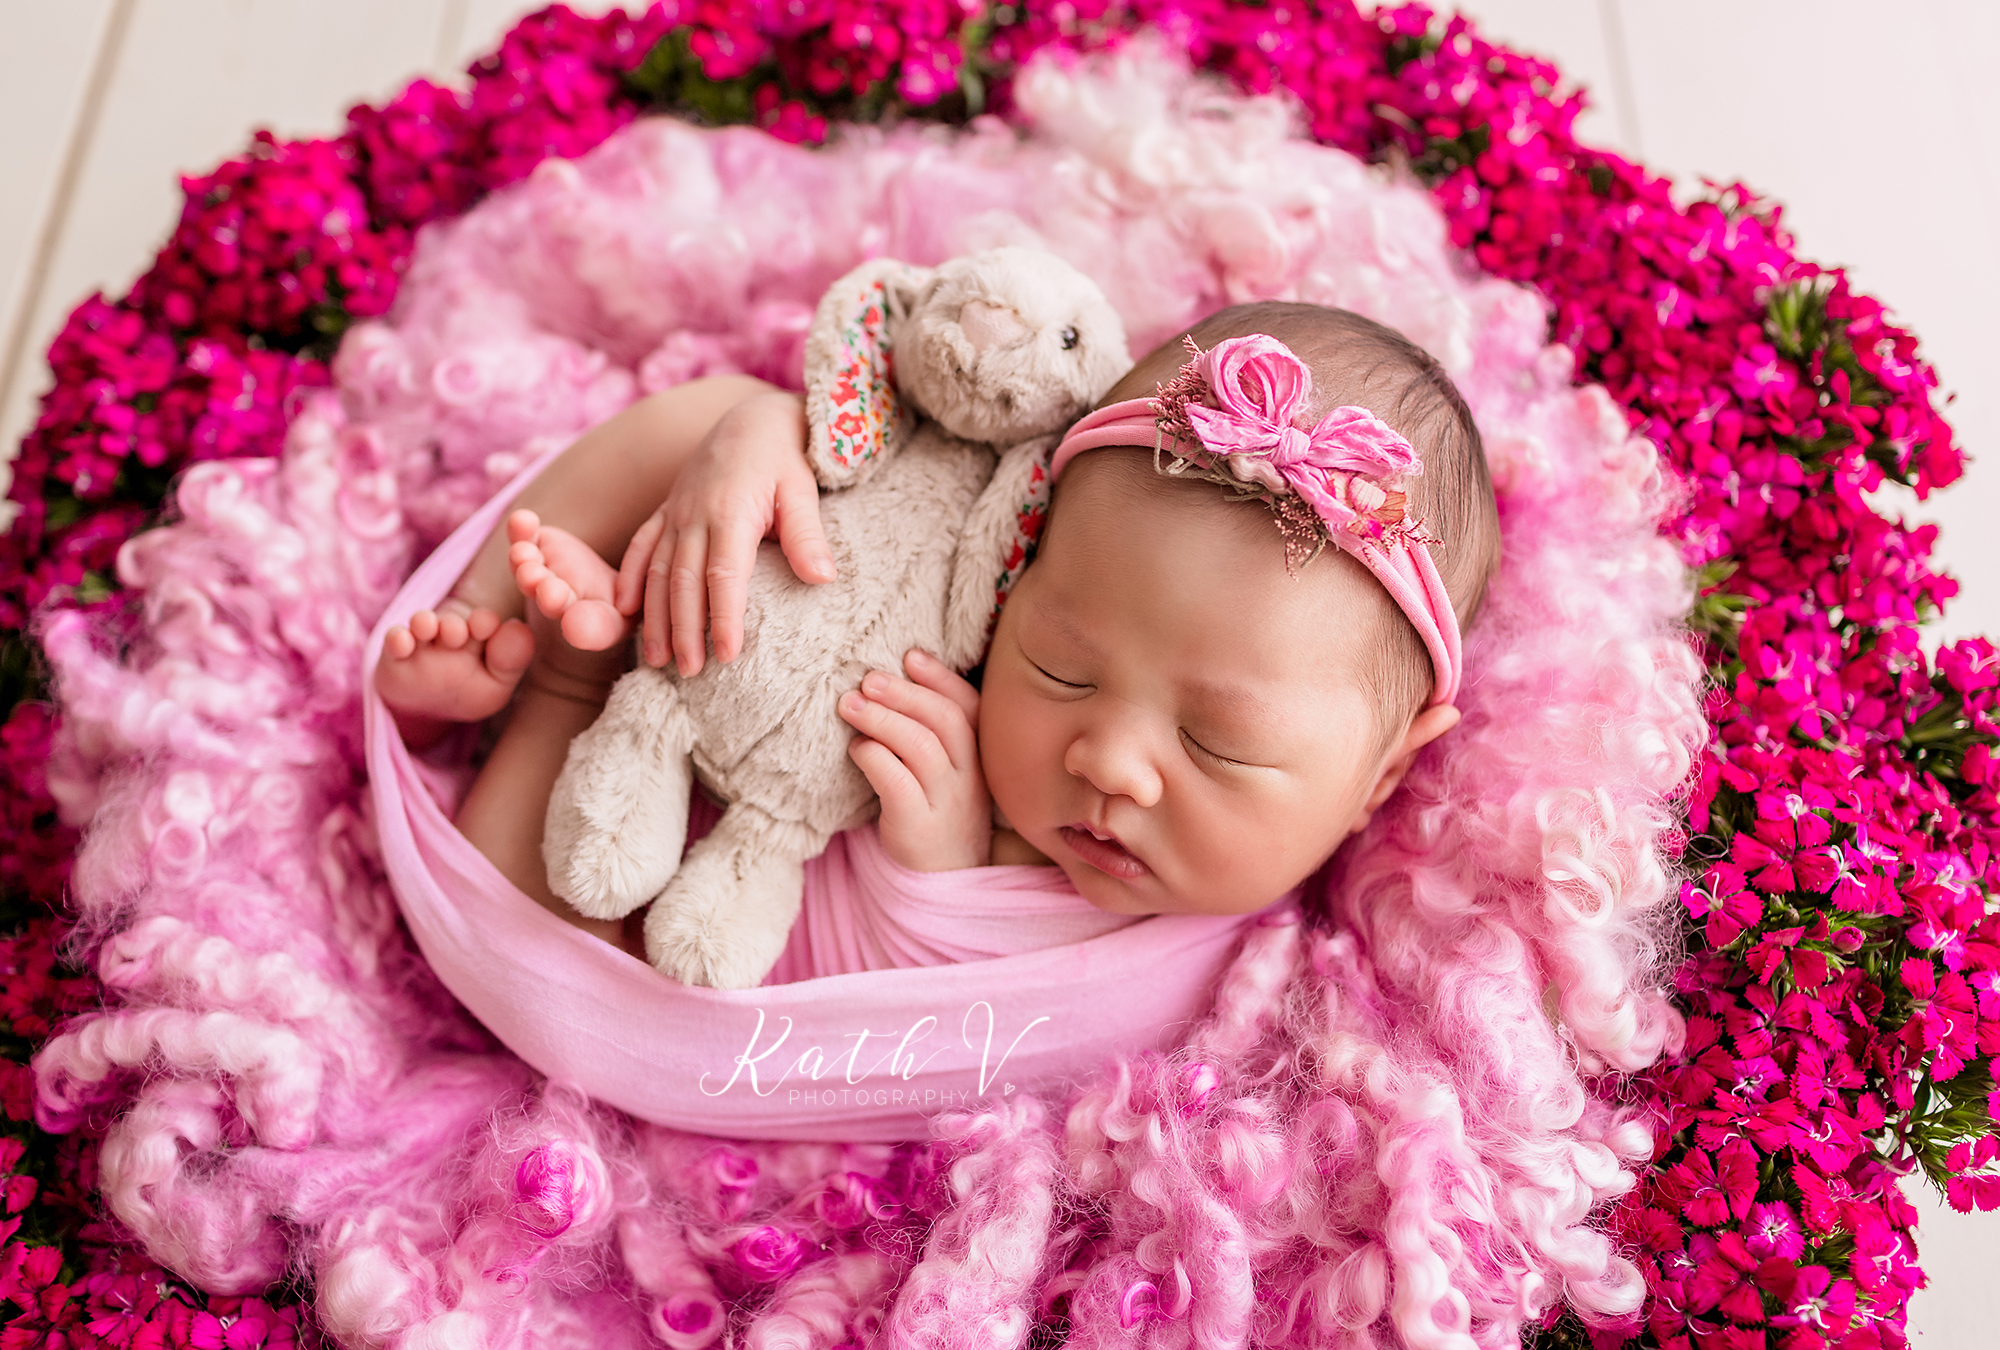 Melbourne-Newborn-Baby-Photography-537.jpg